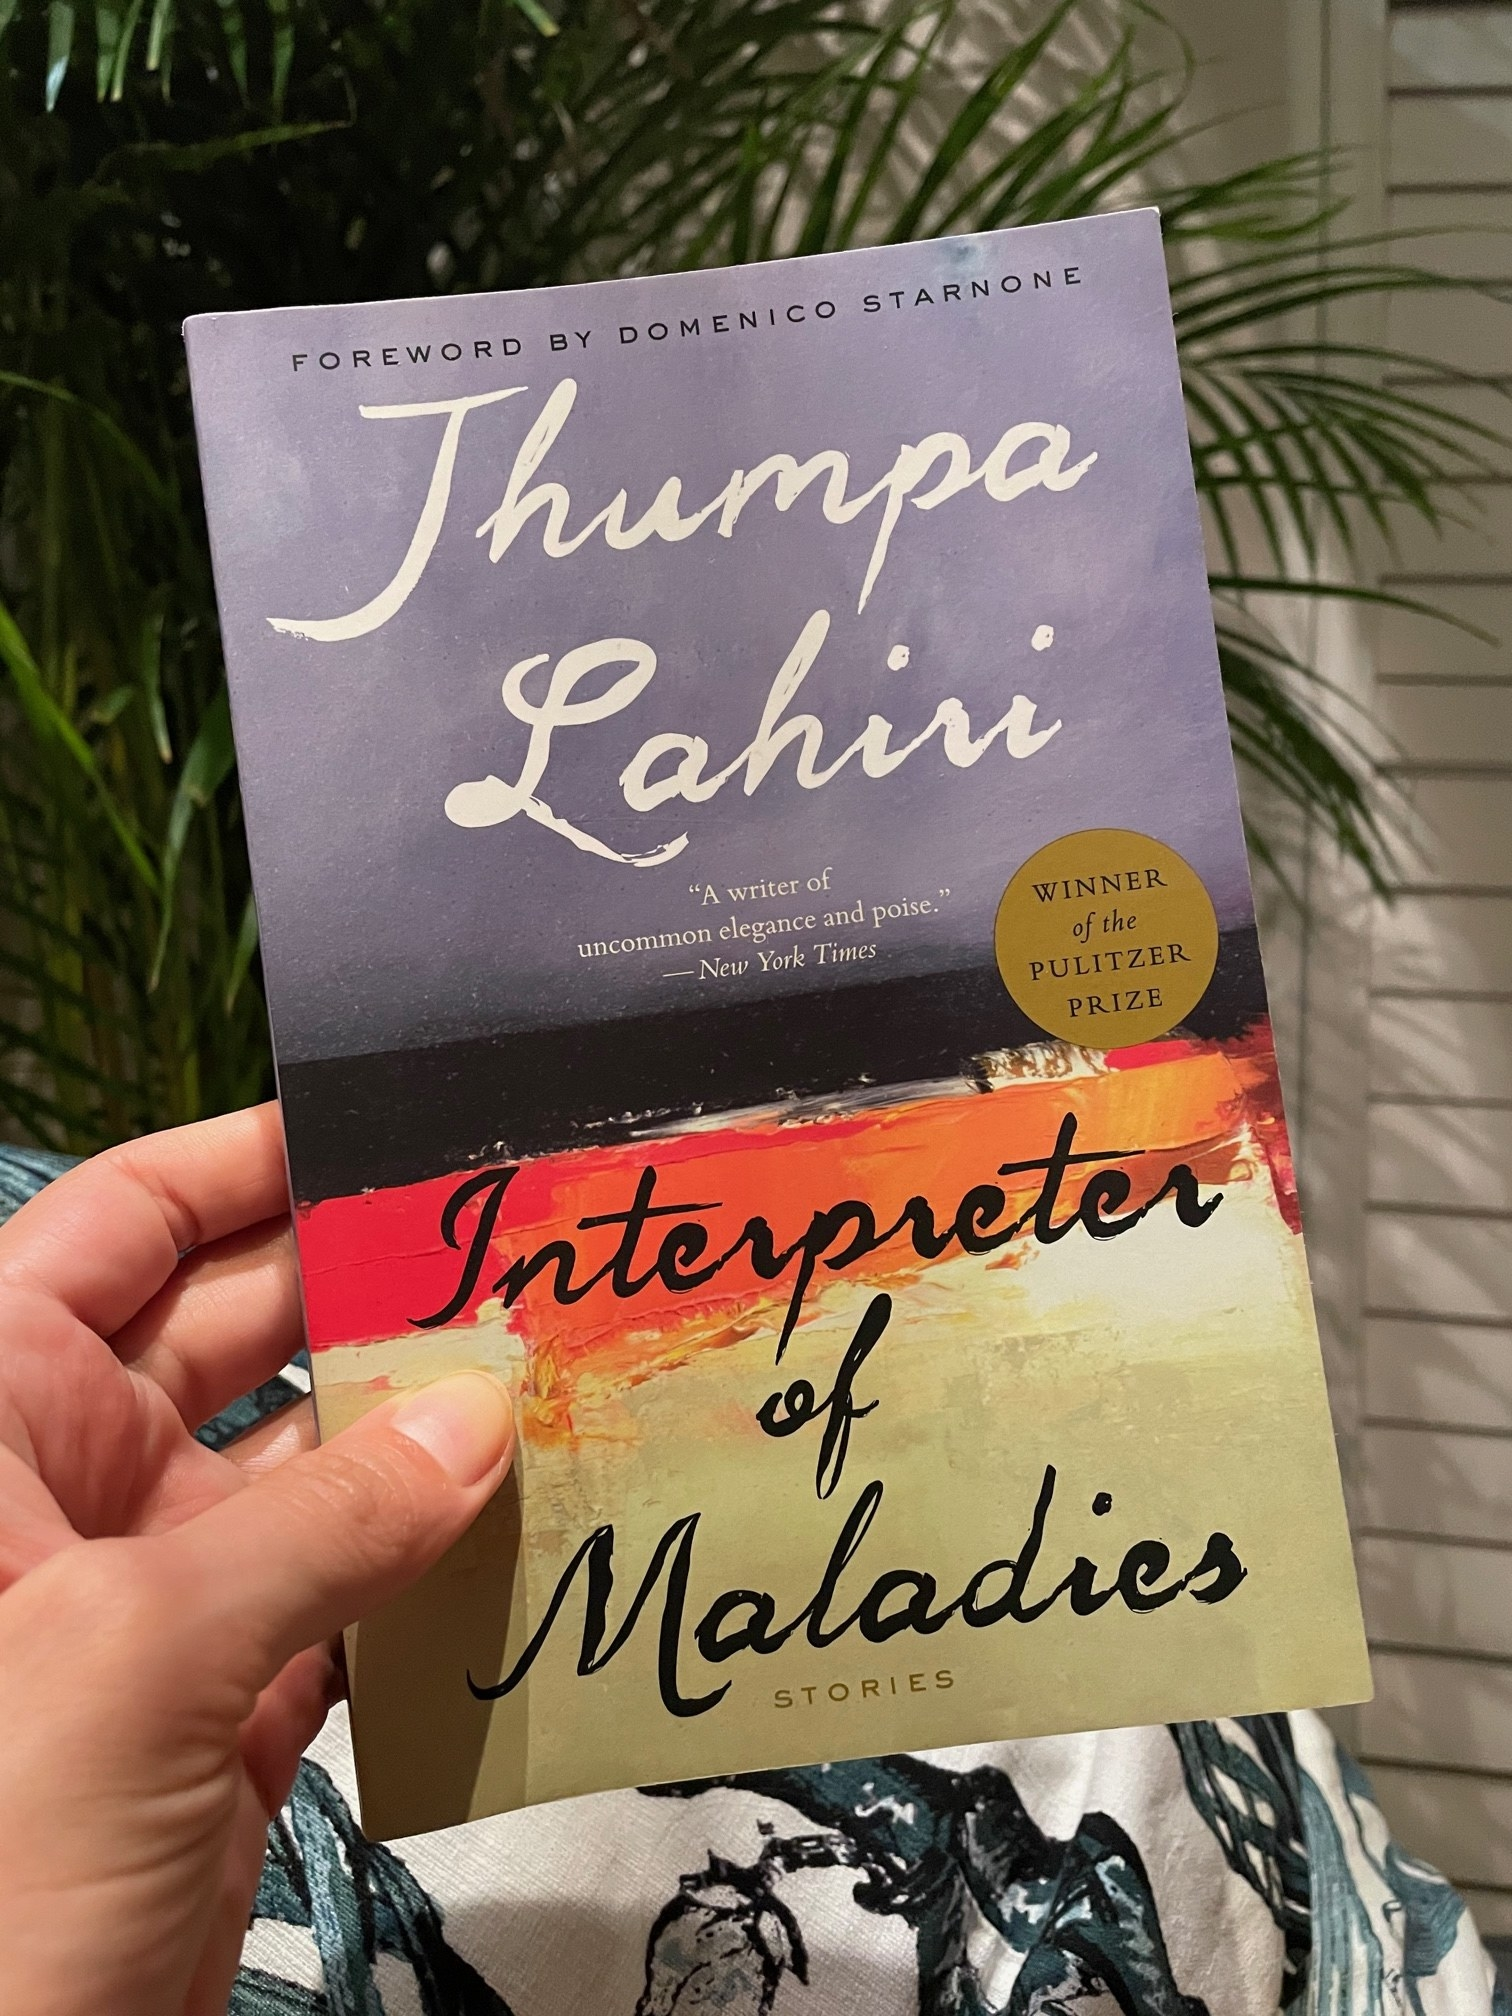 The cover of Interpreter of Maladies